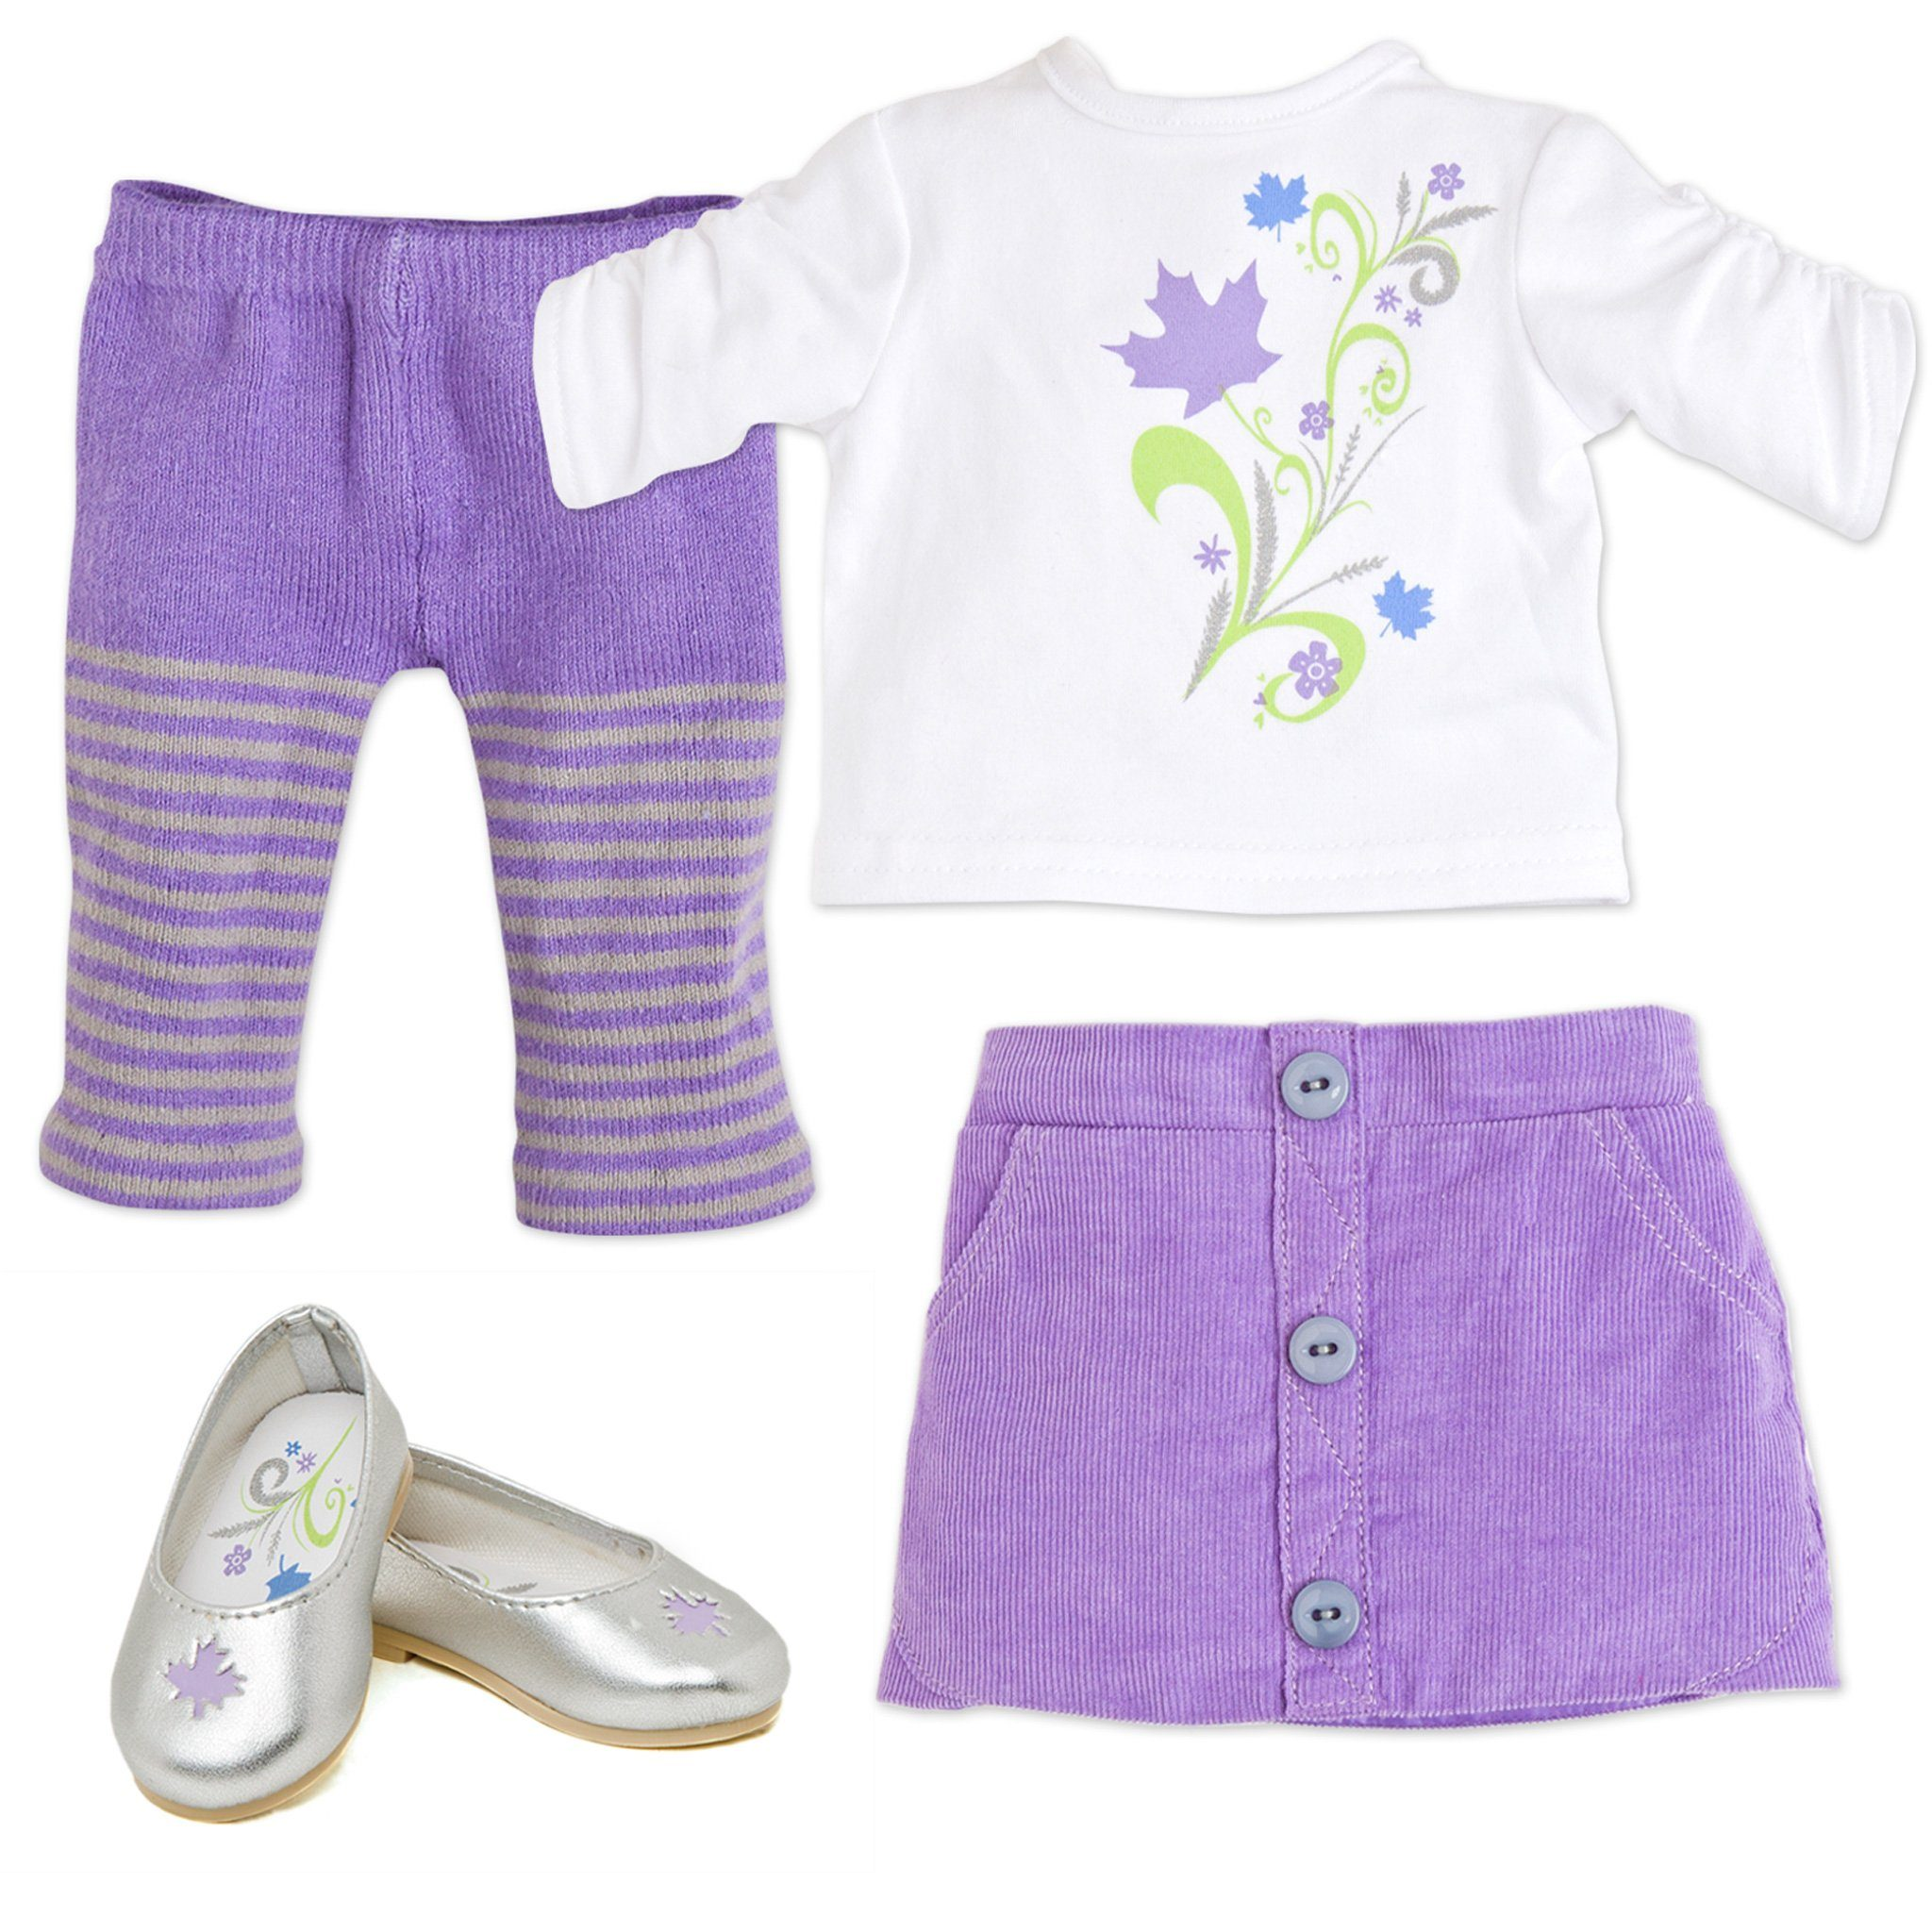 Maplelea Friend 18 inch doll starter outfit white ruched sleeve shirt with leaf graphic, purple corduroy skirt, striped tights, silver ballet flats with maple leaf cut-out fits all 18 inch dolls.